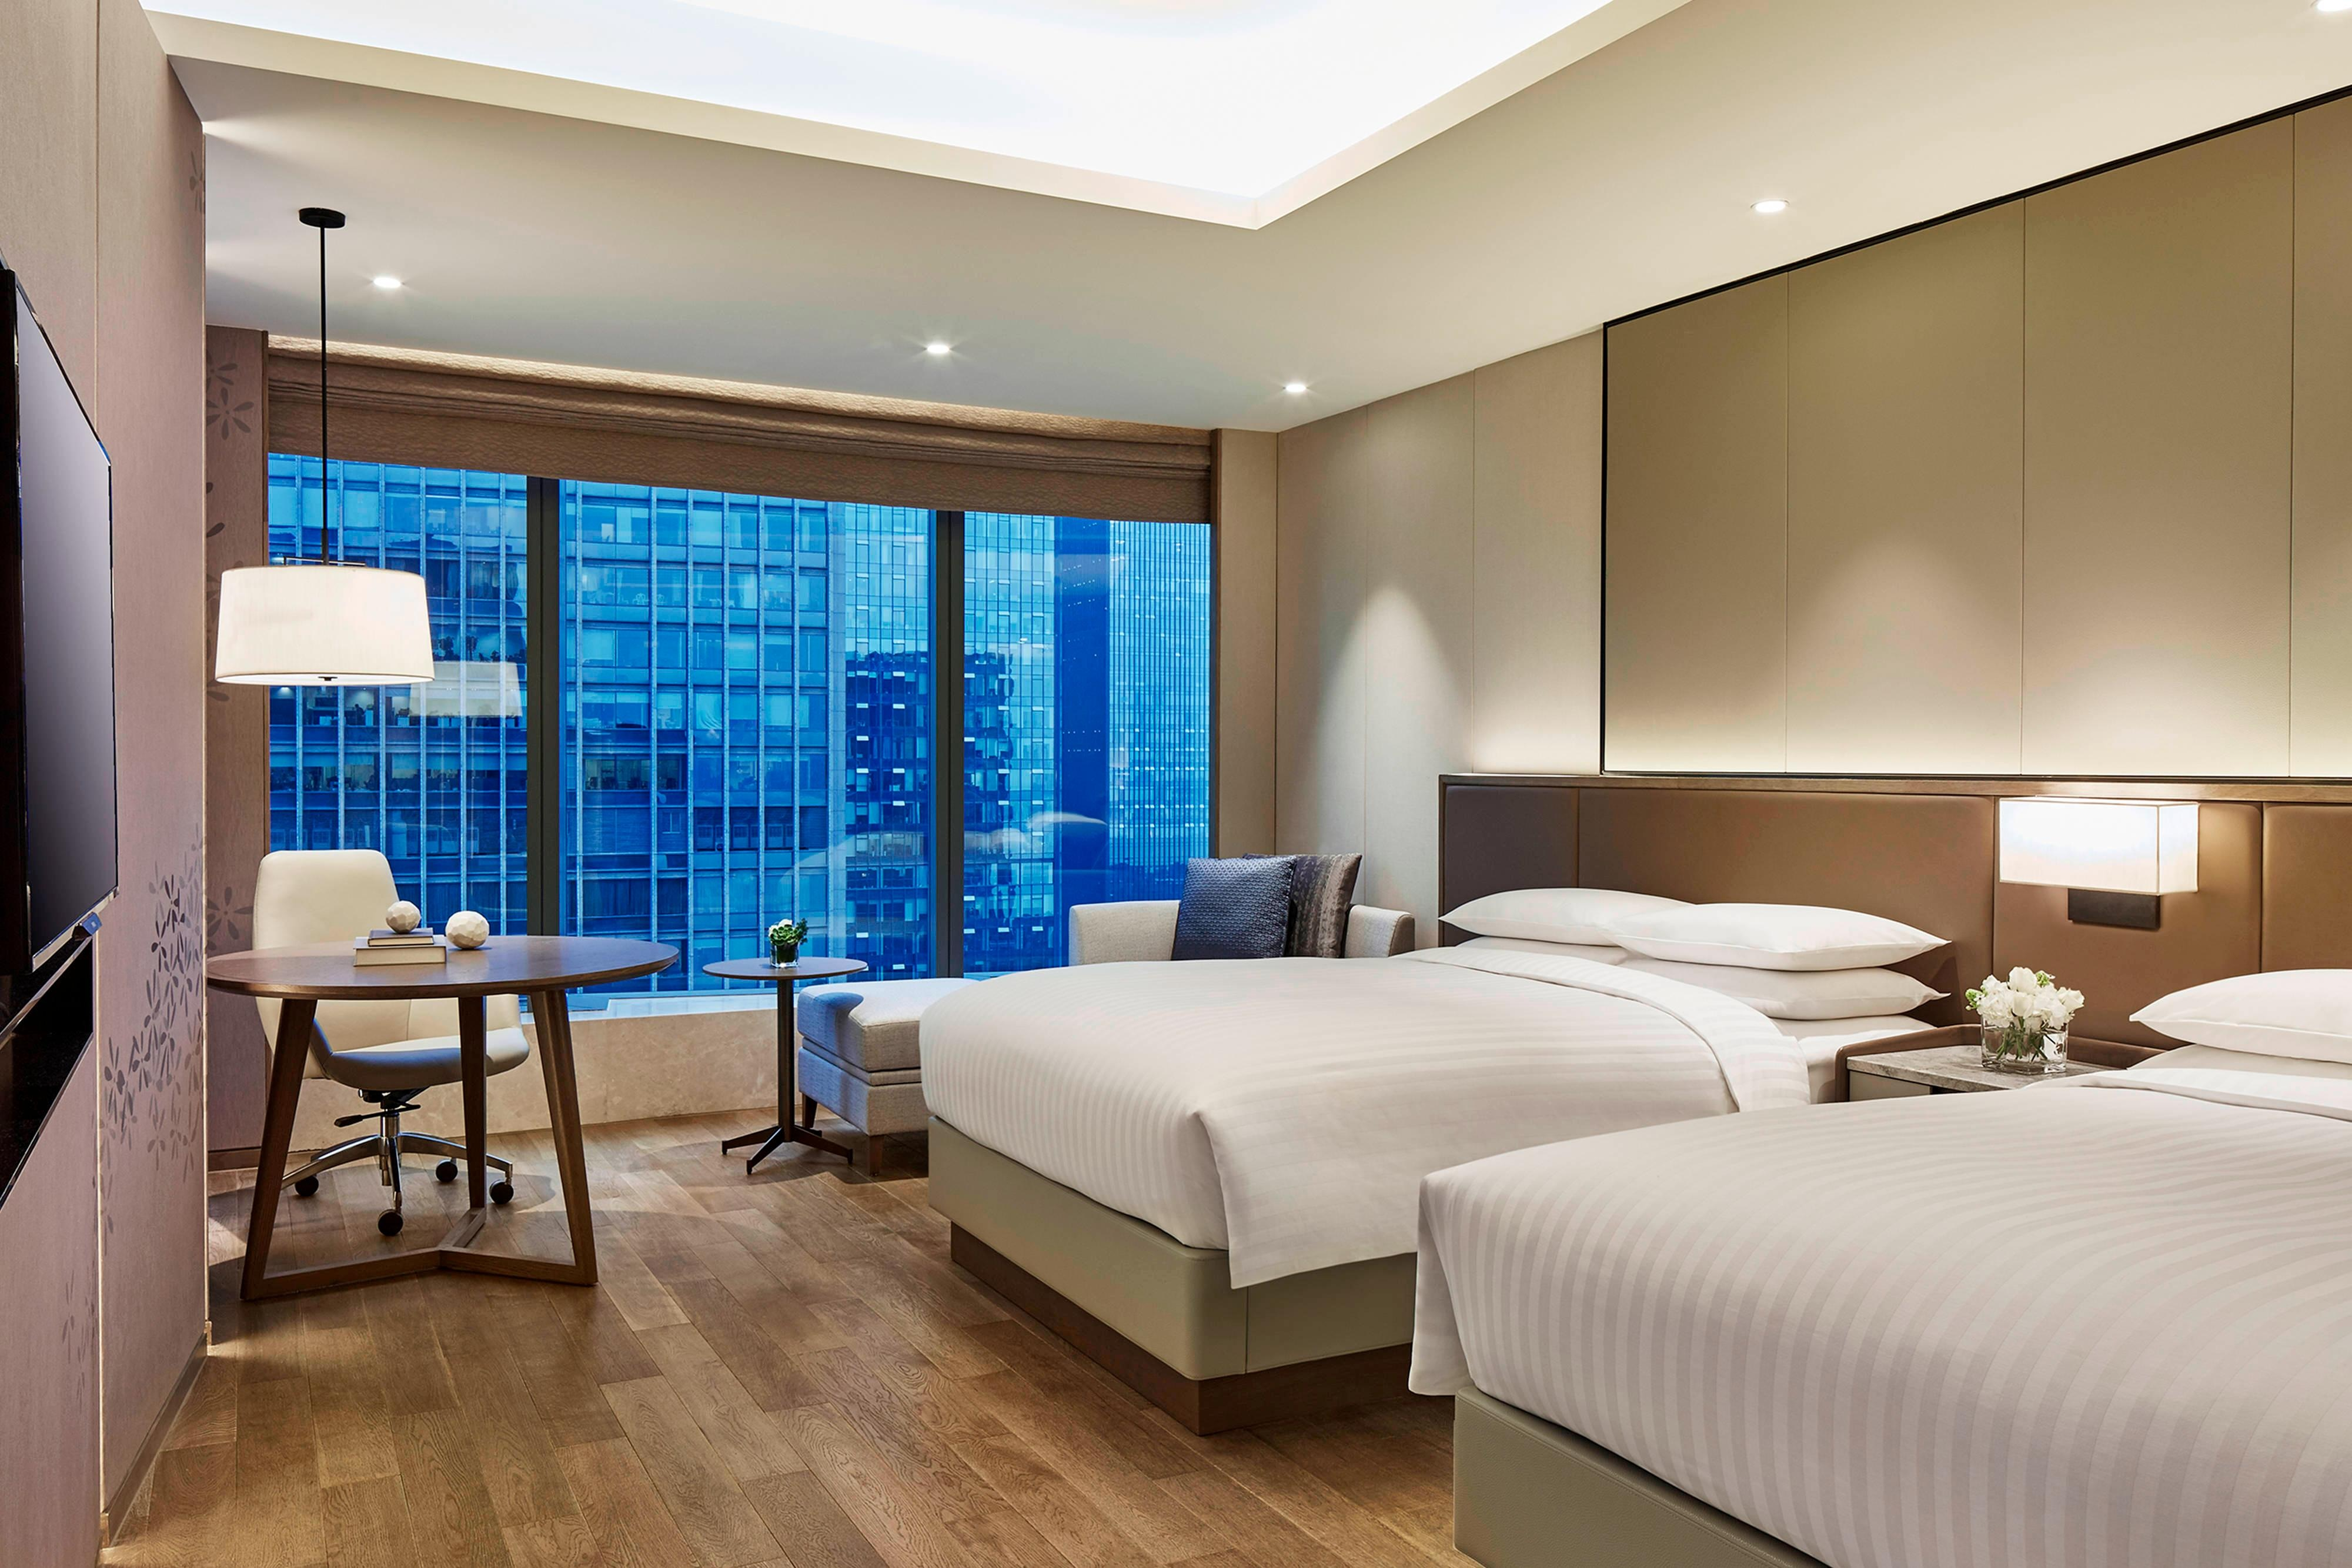 Deluxe Double/Double Guest Room - City View